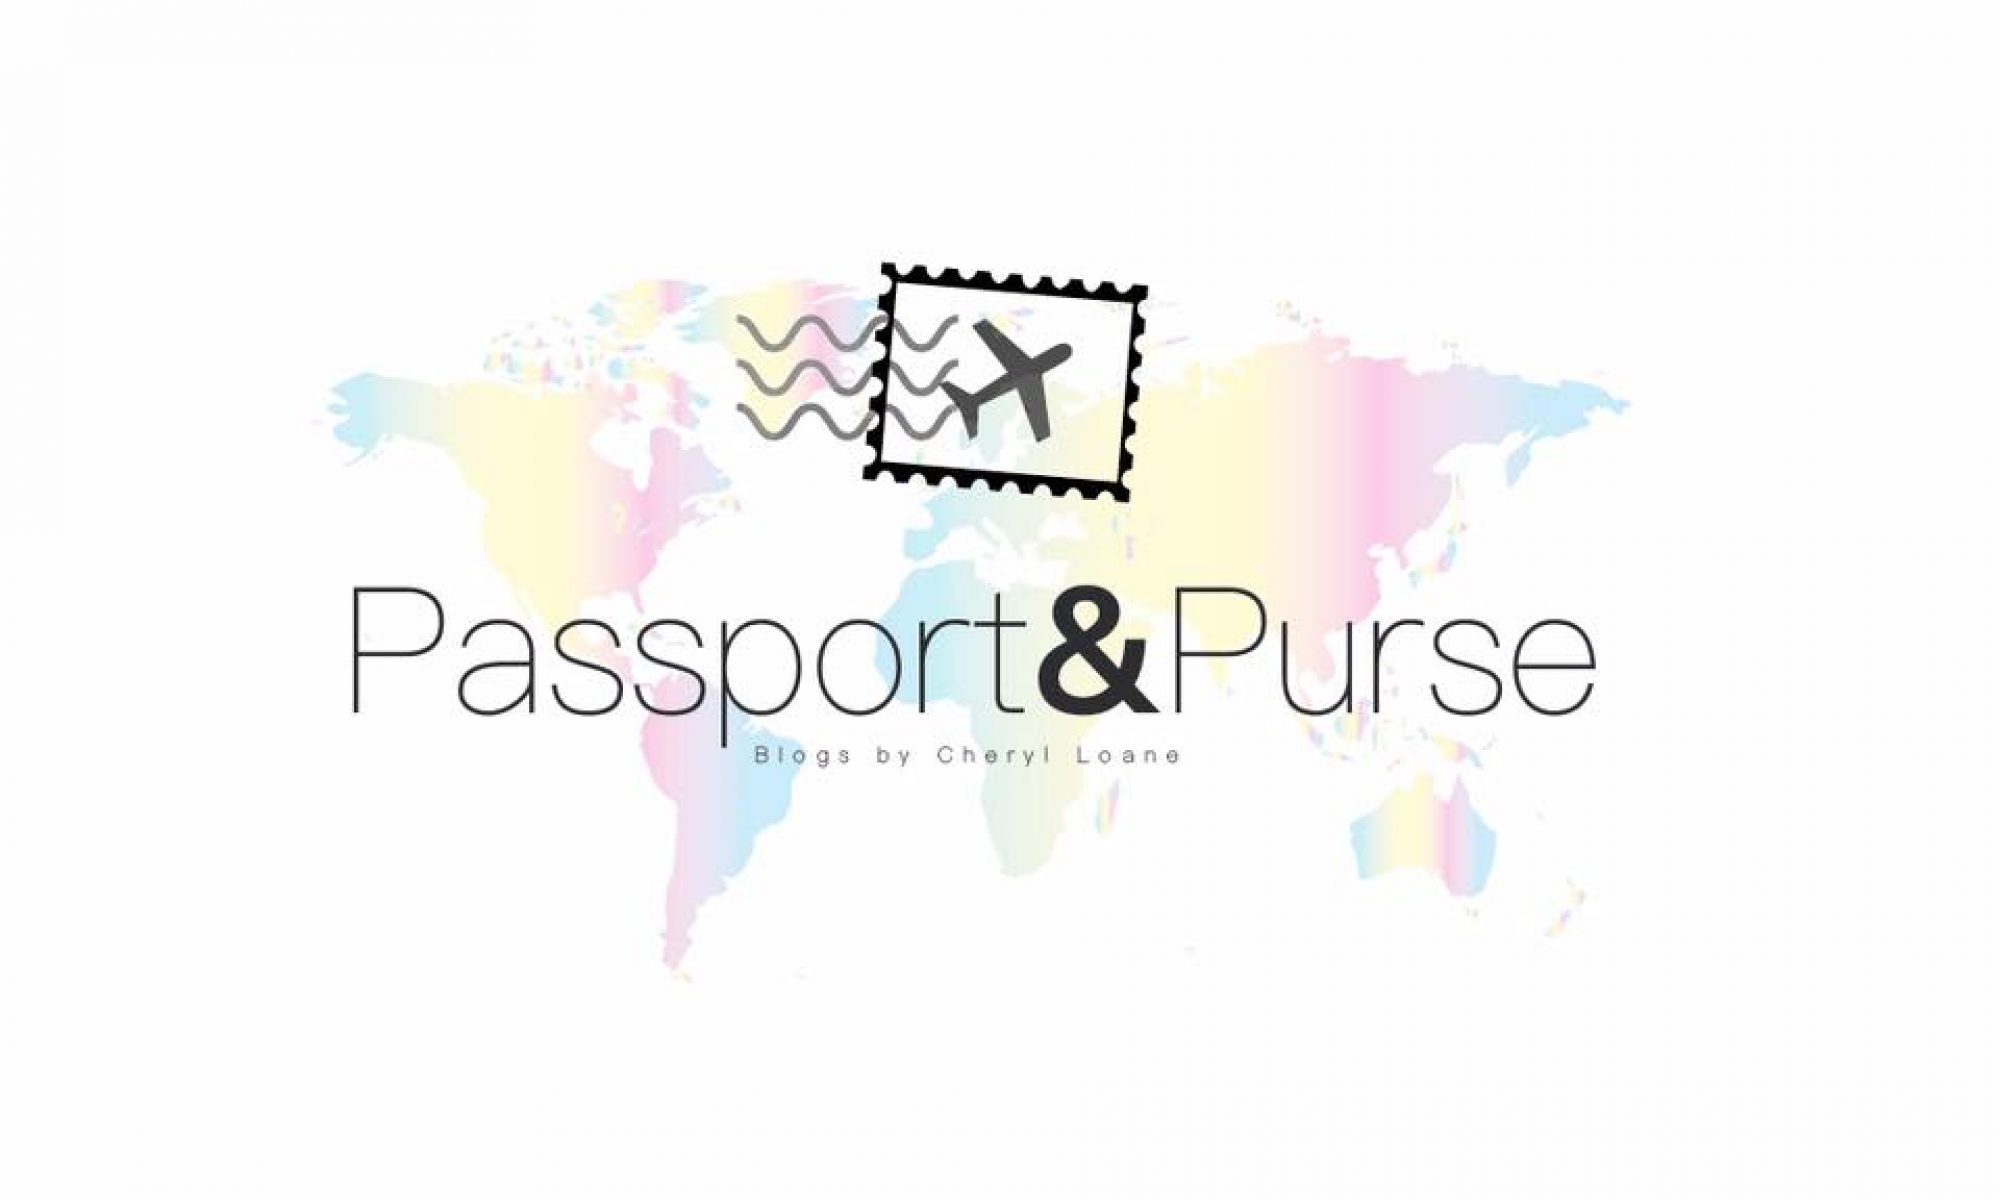 Passport & Purse